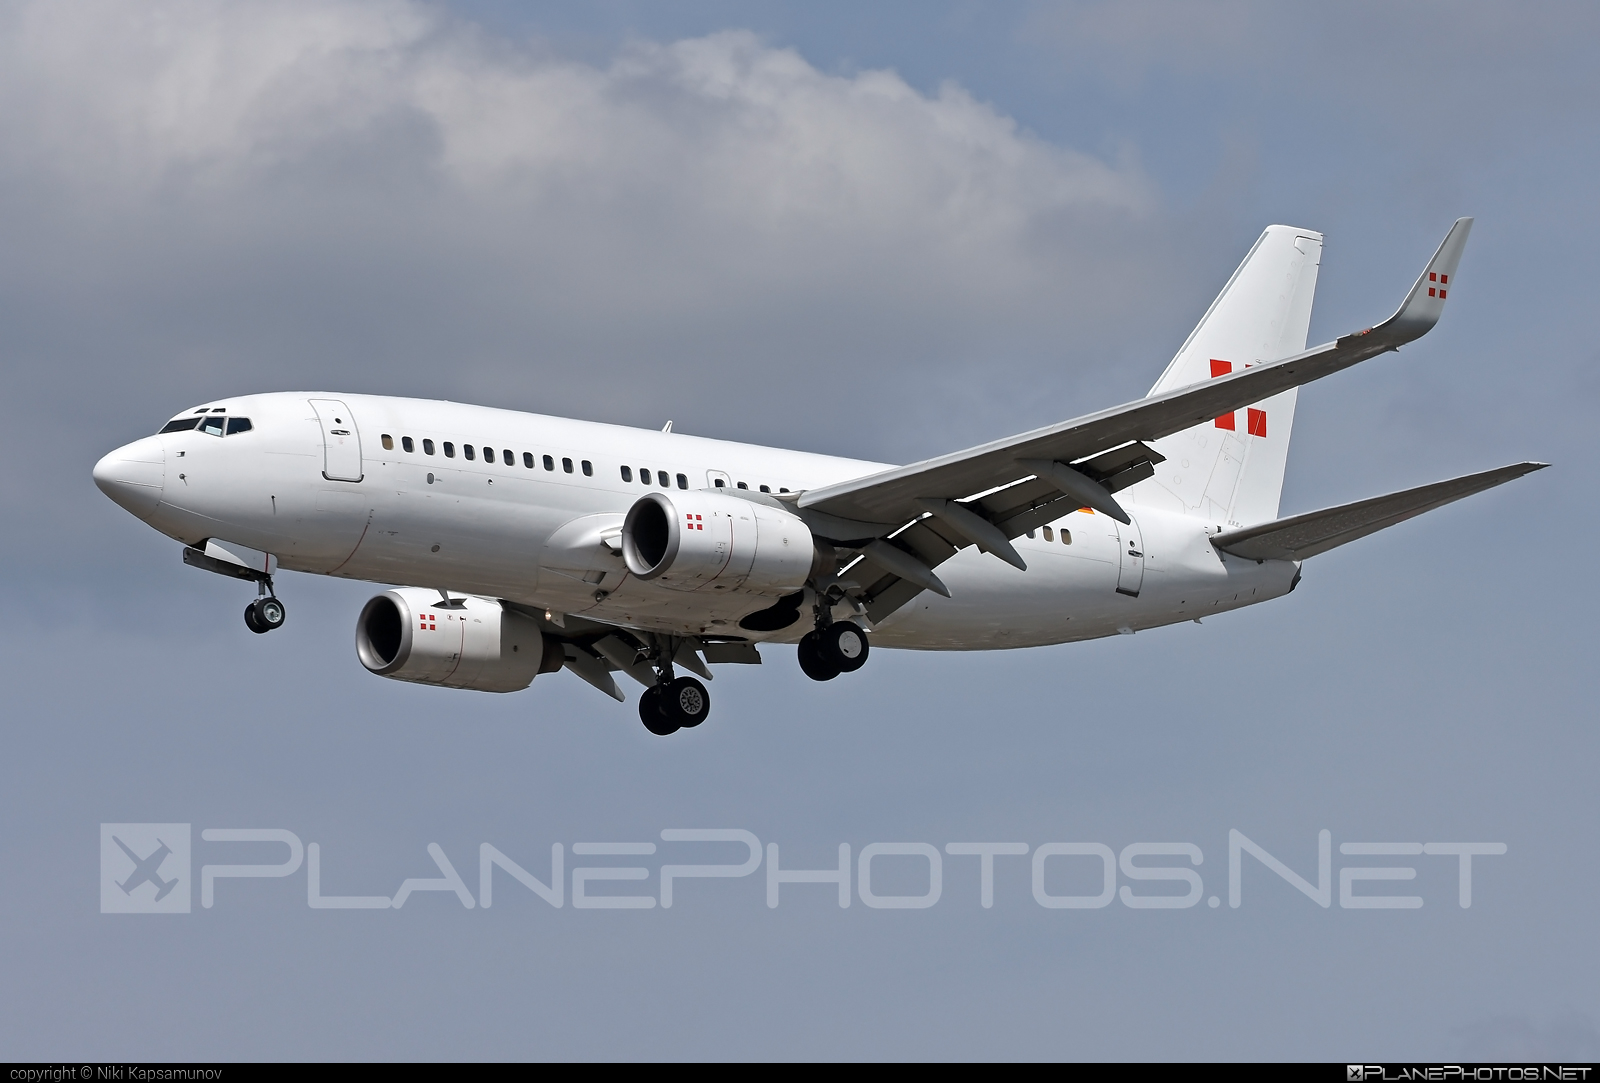 Boeing 737-700 BBJ - D-AWBB operated by PrivatAir #b737 #b737bbj #bbj #boeing #boeing737 #boeingbusinessjet